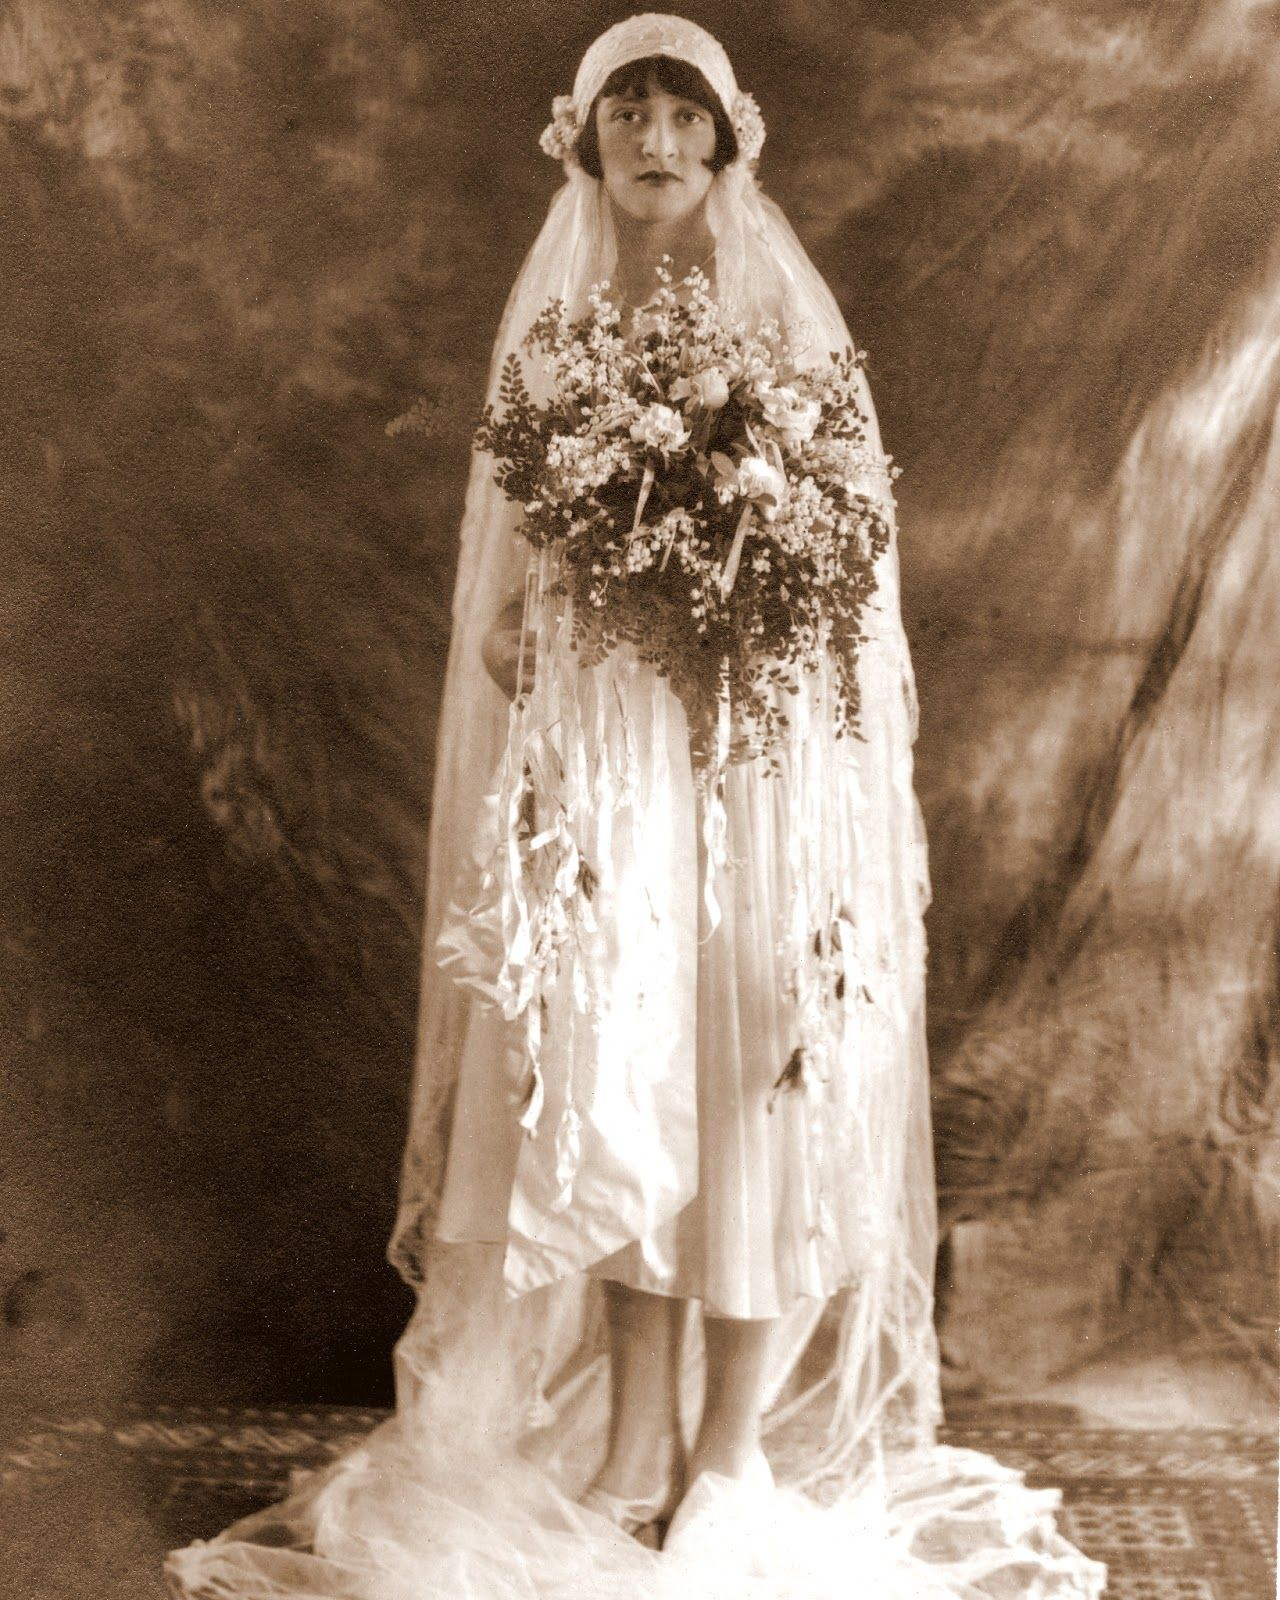 Wedding Wednesday: Great-Aunt Rose's 1925 Bridal Outfit In